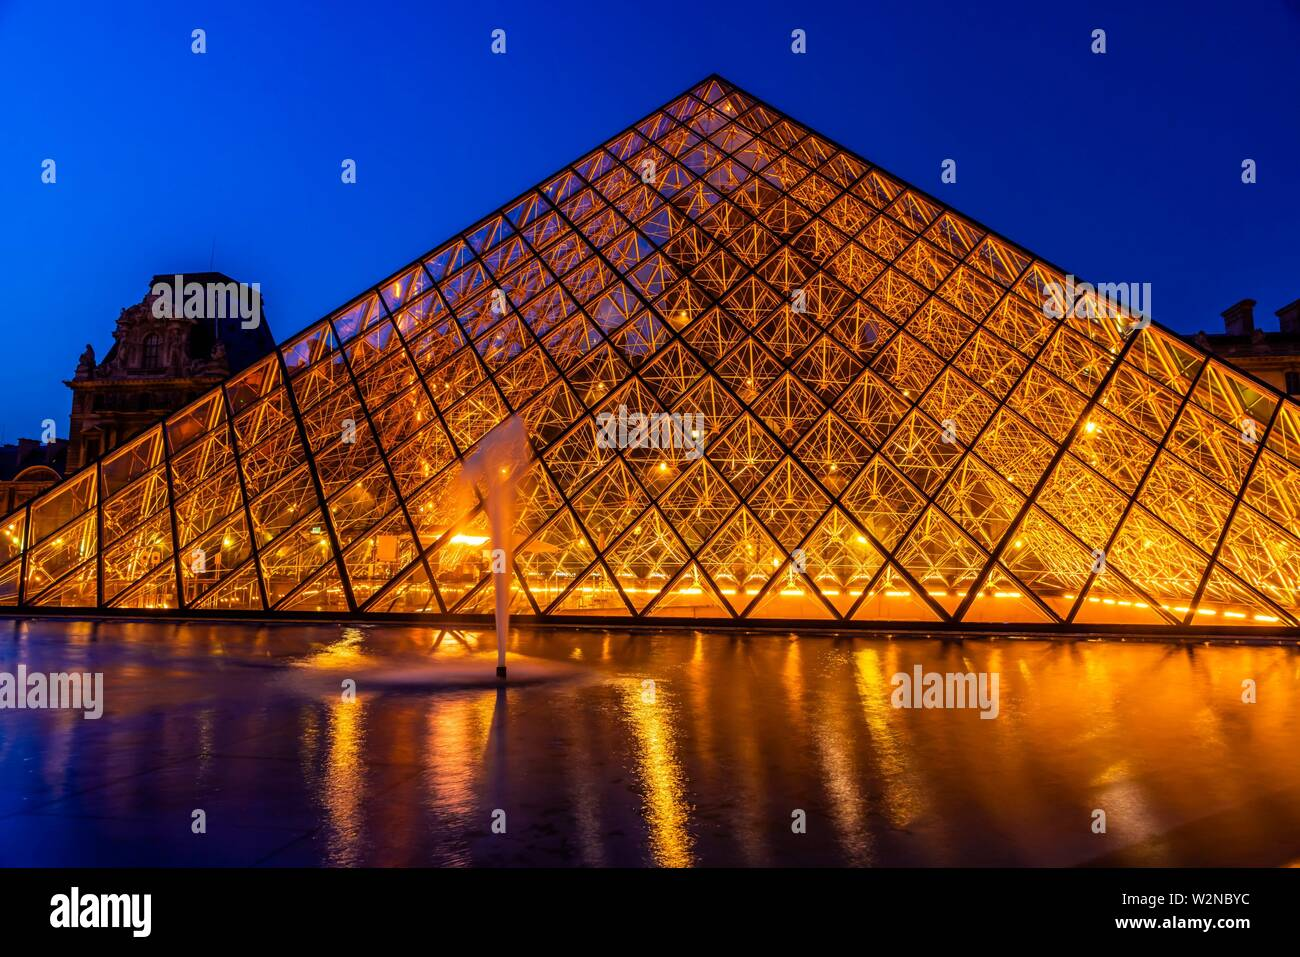 The Louvre Pyramid (Pyramide du Louvre) is a large glass and metal pyramid designed by Chinese-American architect I. M. Pei, surrounded by three Stock Photo